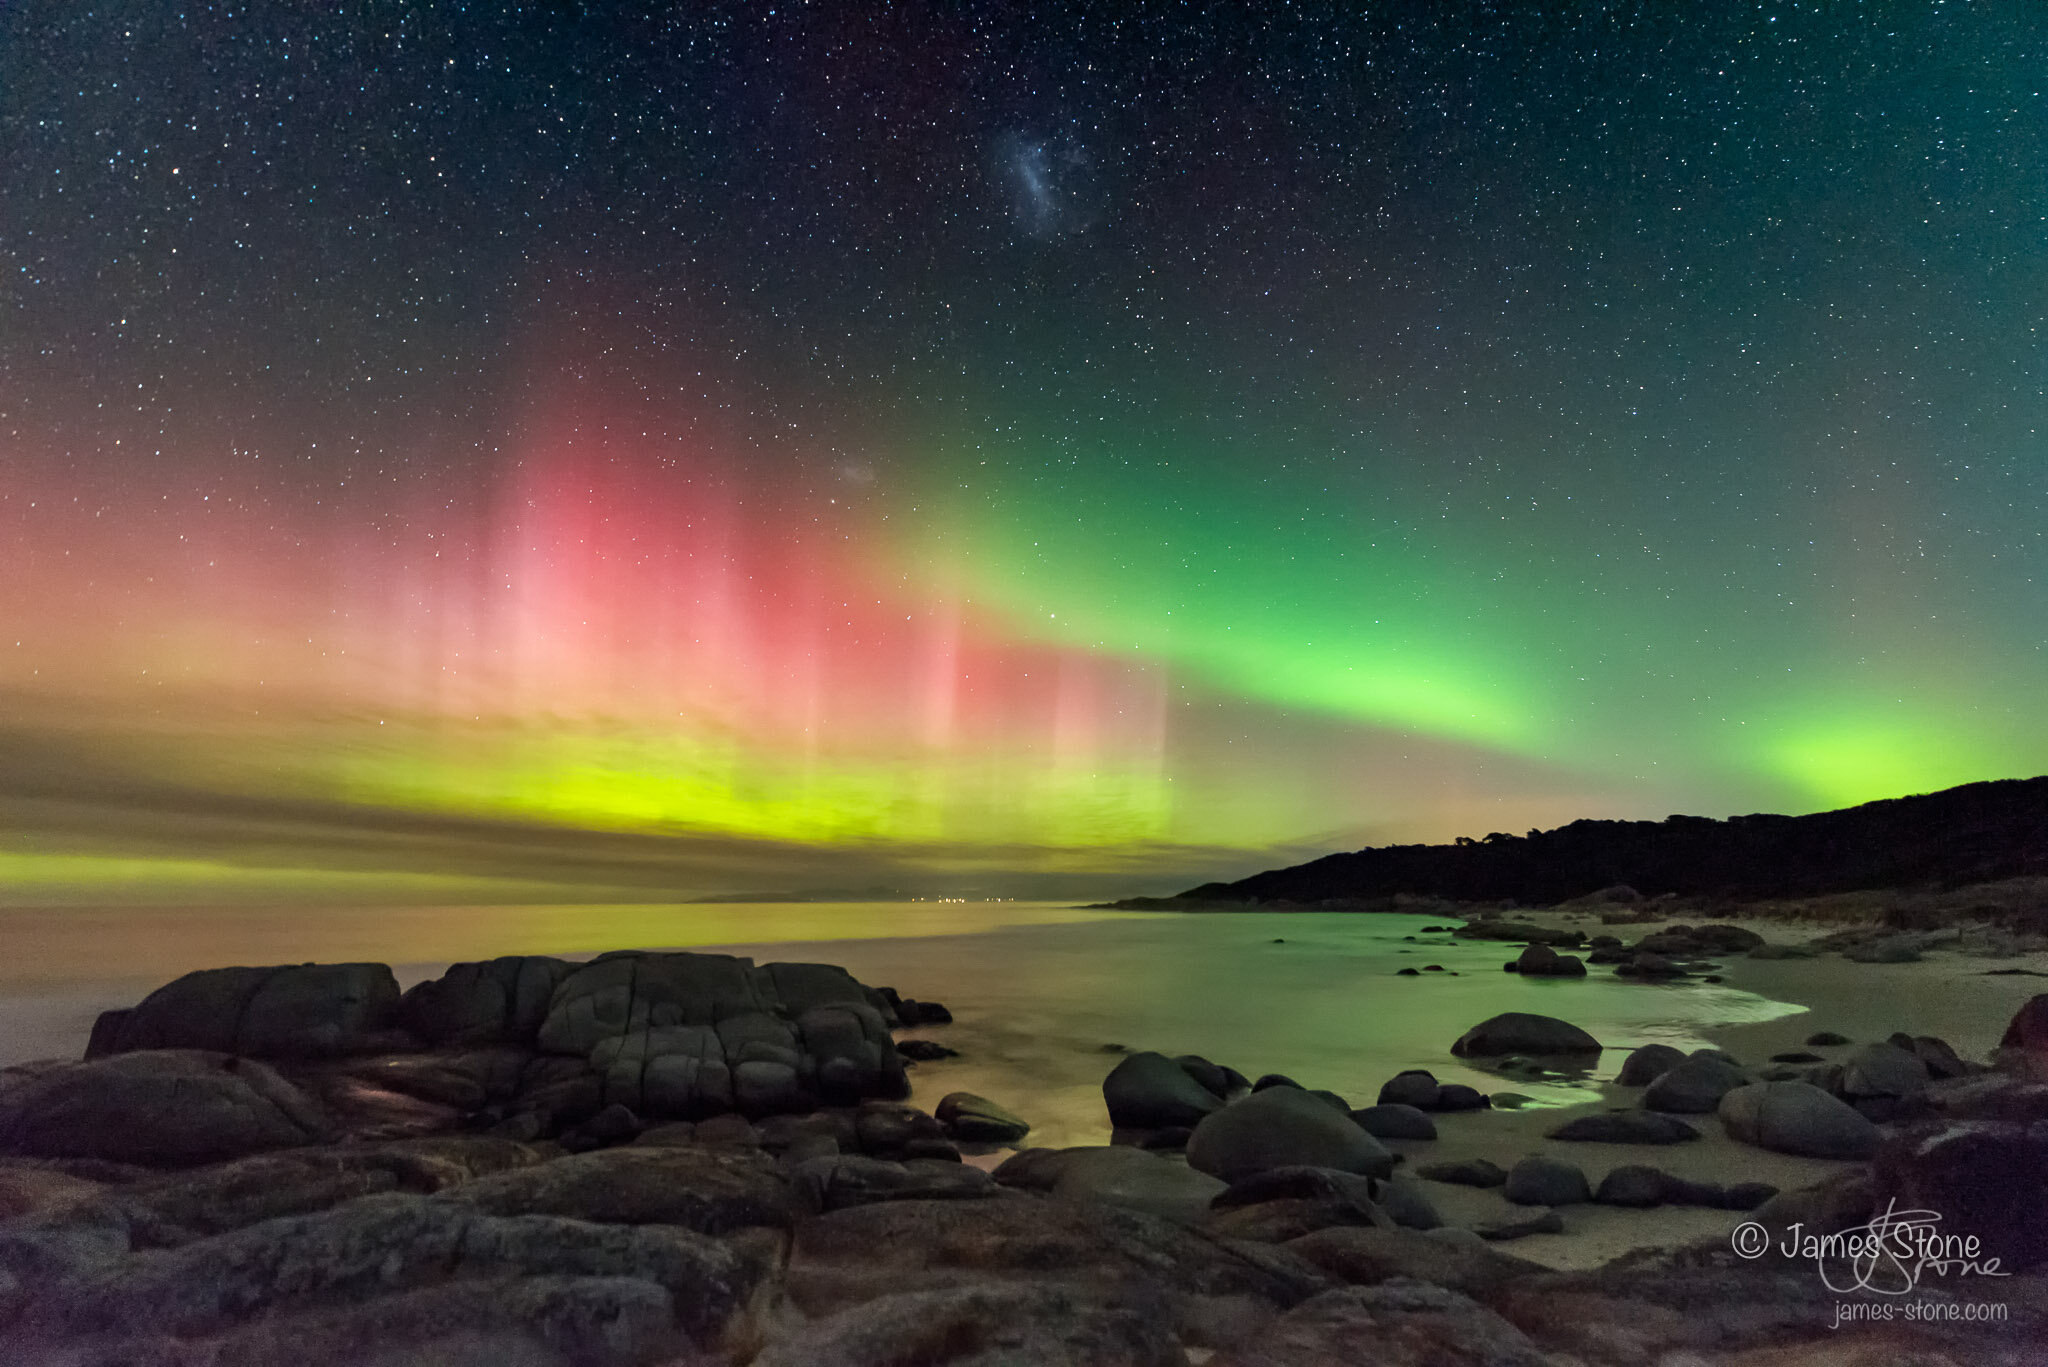 2nd Place Aurora Category - Aurora over Beer Barrel Beach